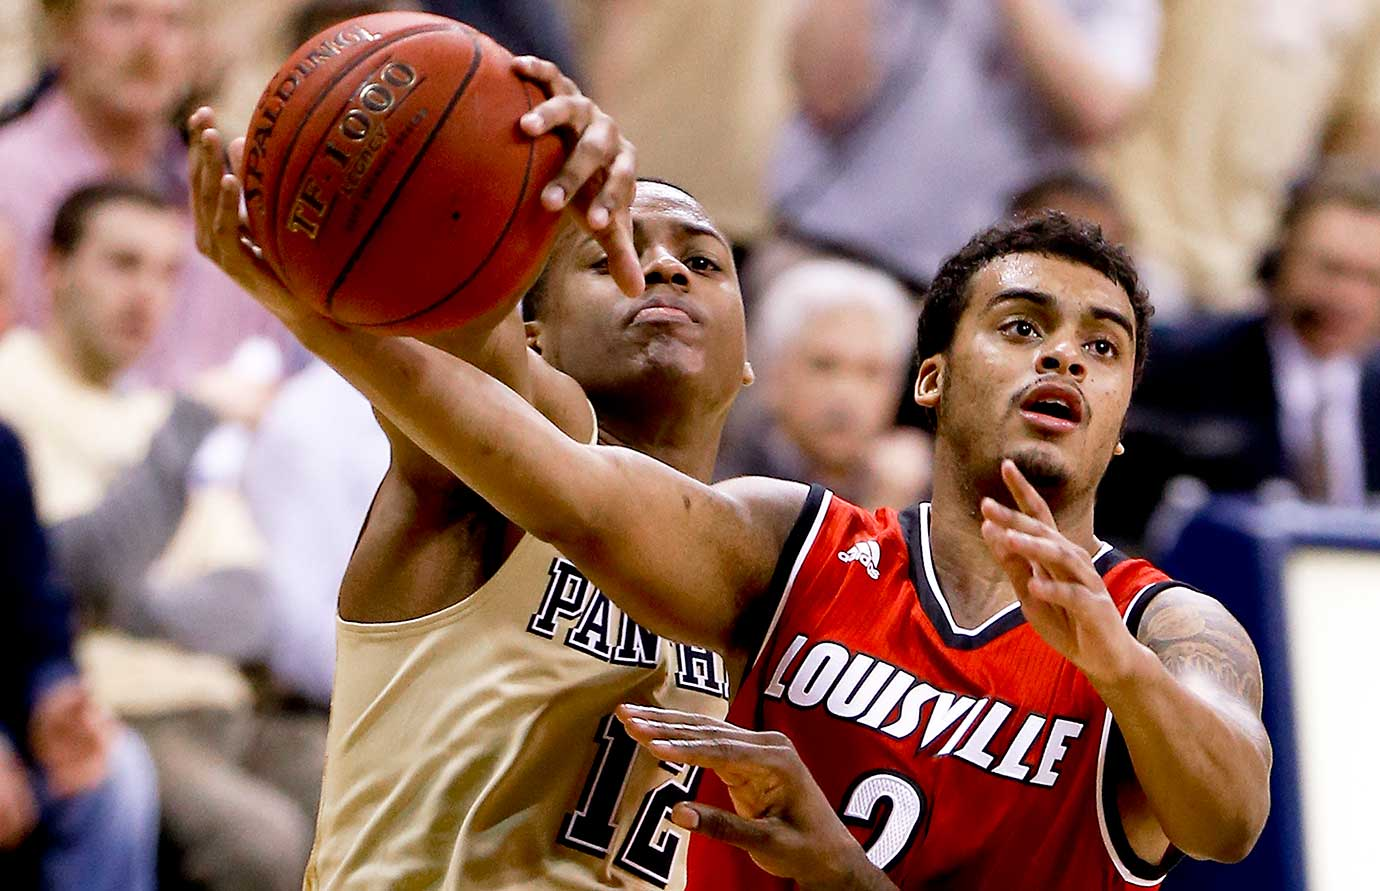 Pittsburgh's Chris Jones defends Louisville's Quentin Snider as he shoots.